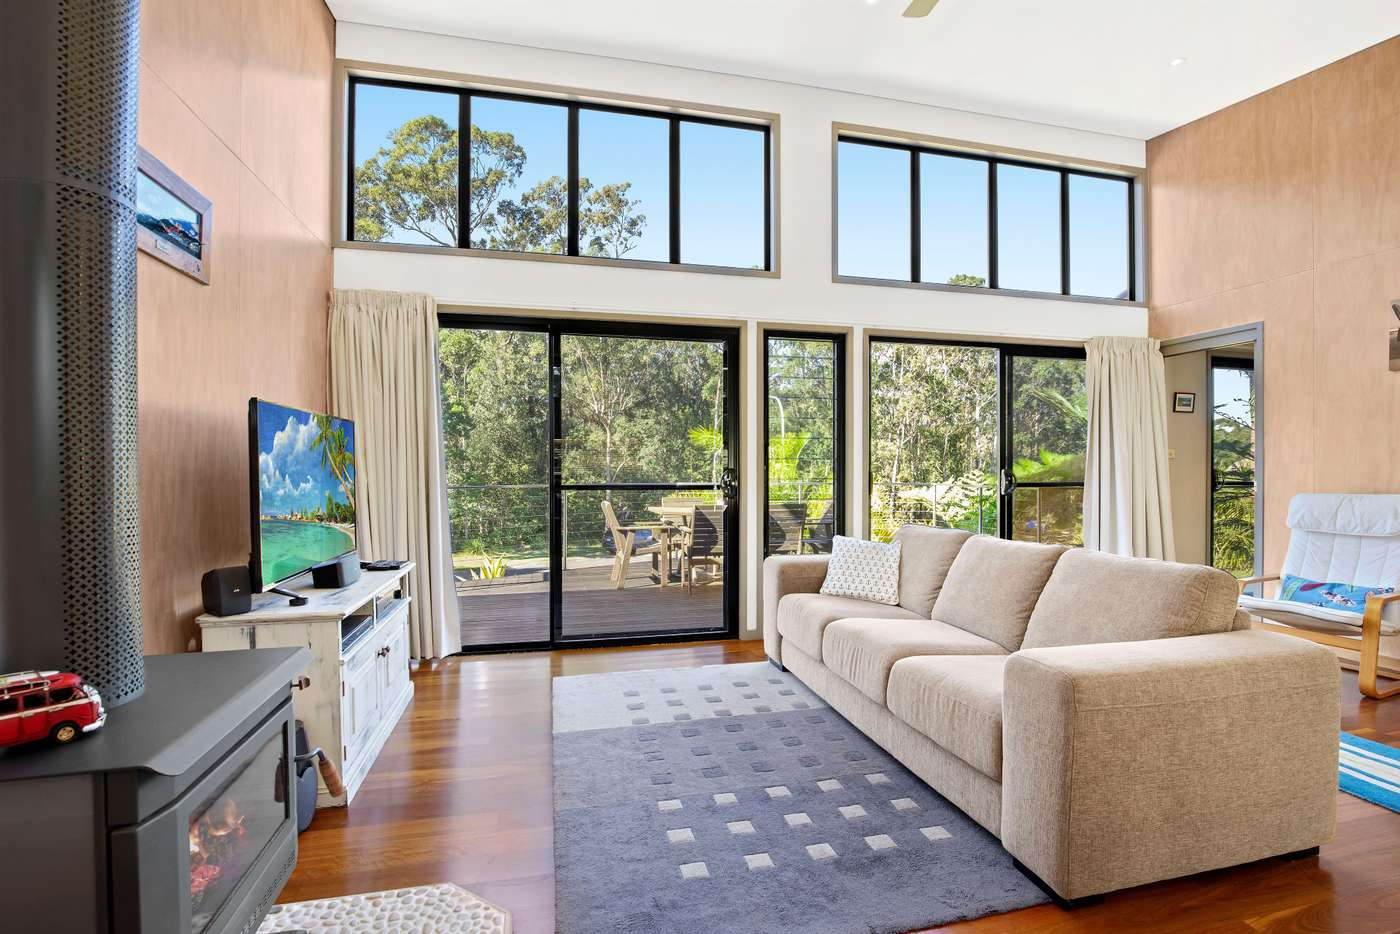 Fifth view of Homely house listing, 13 Aries Place, Narrawallee NSW 2539